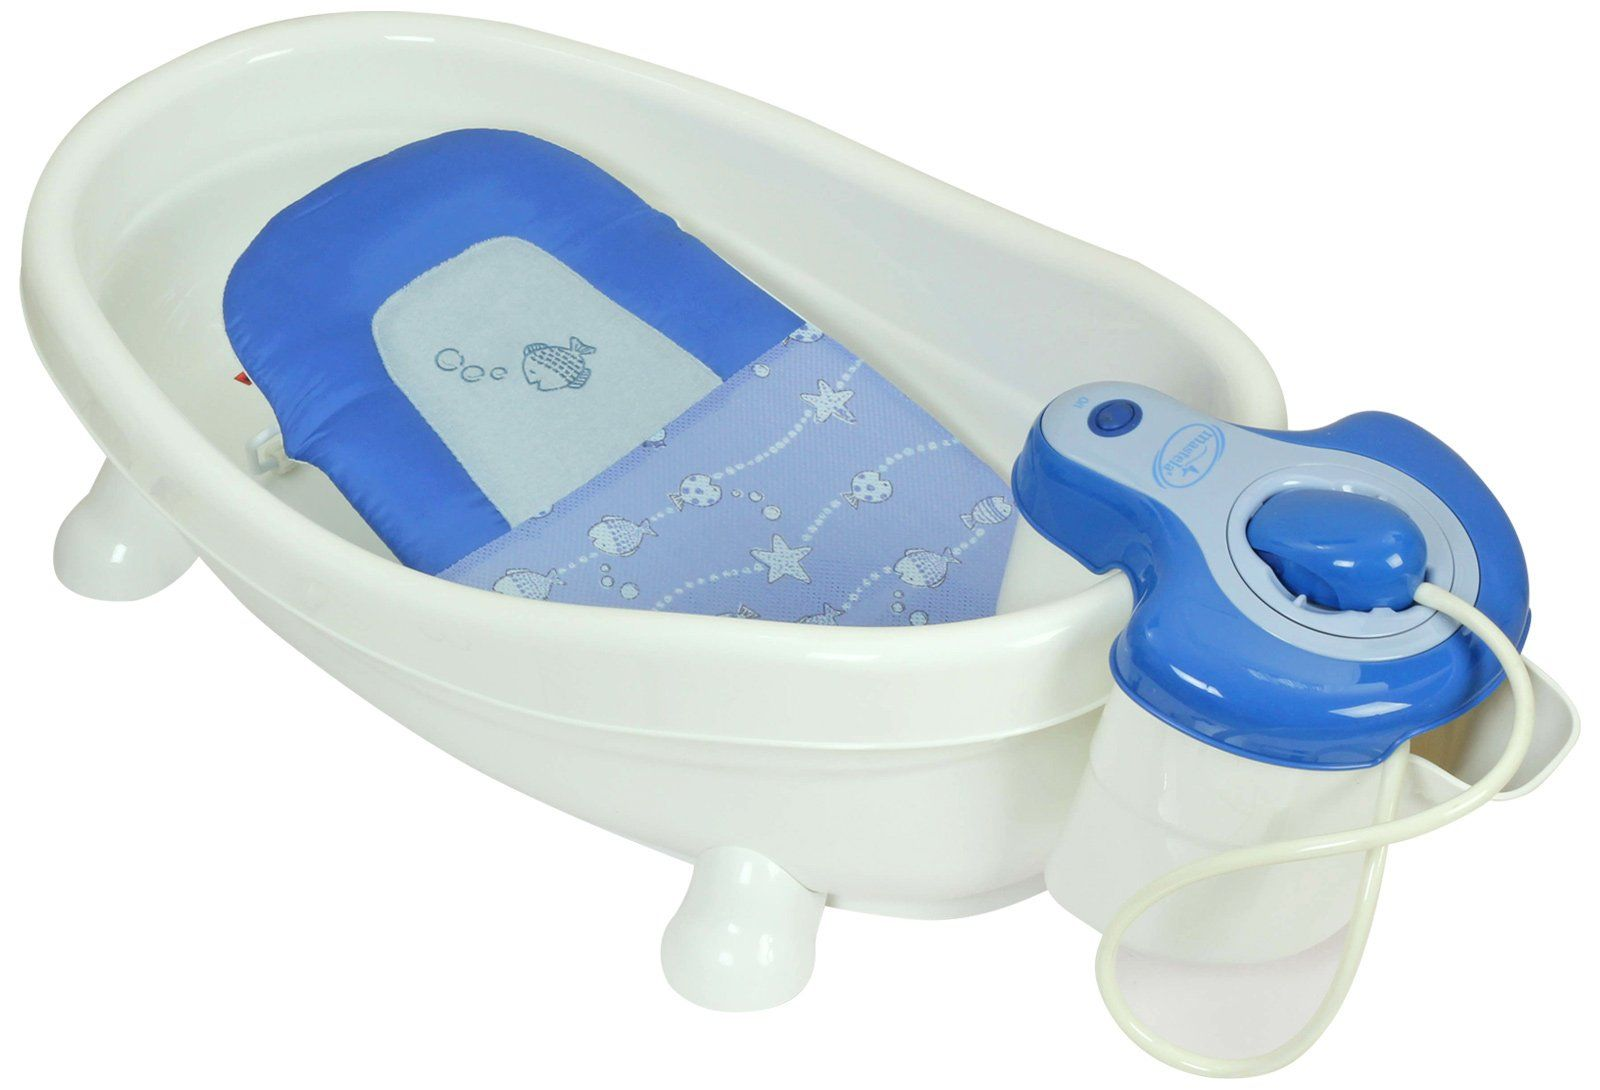 baby bath tub - Google 검색 | Bathroom products, bath tub ...